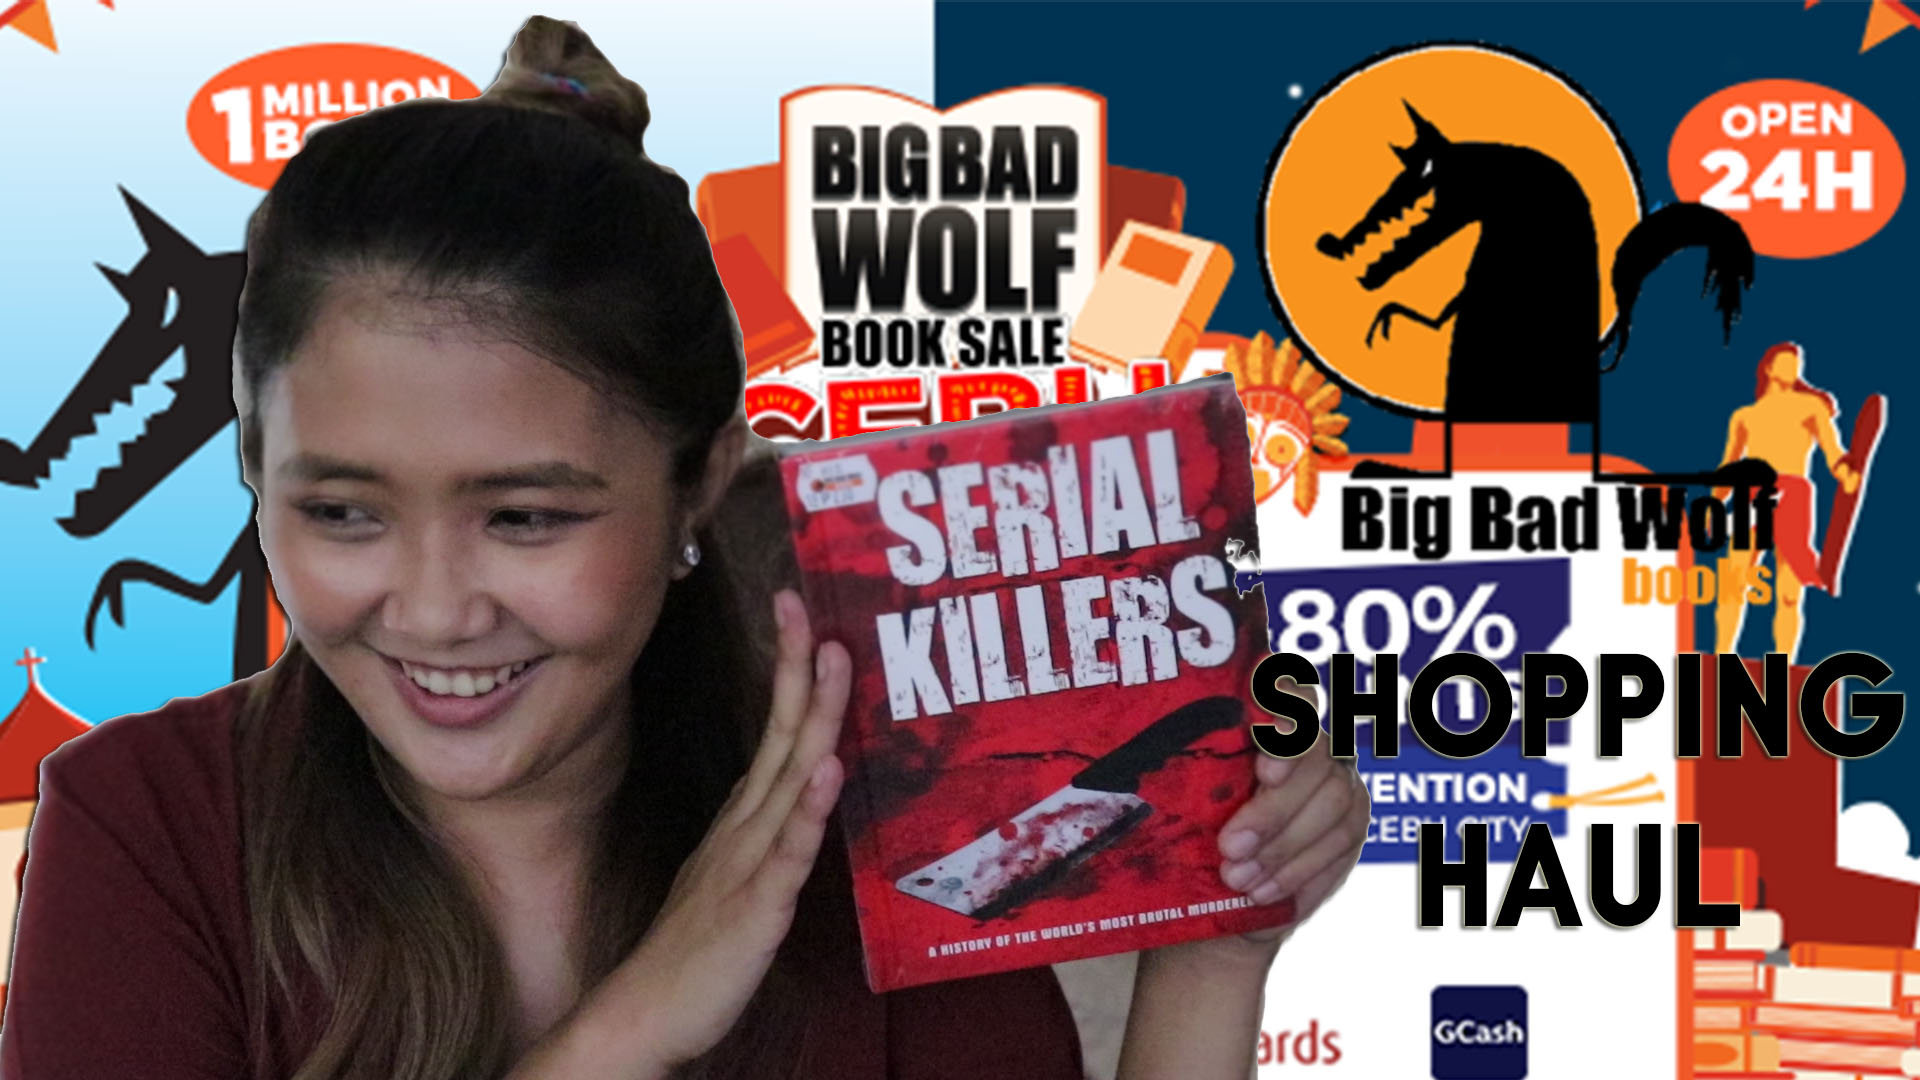 [Vlog] Major Book Haul: What I Got From Big Bad Wolf Books